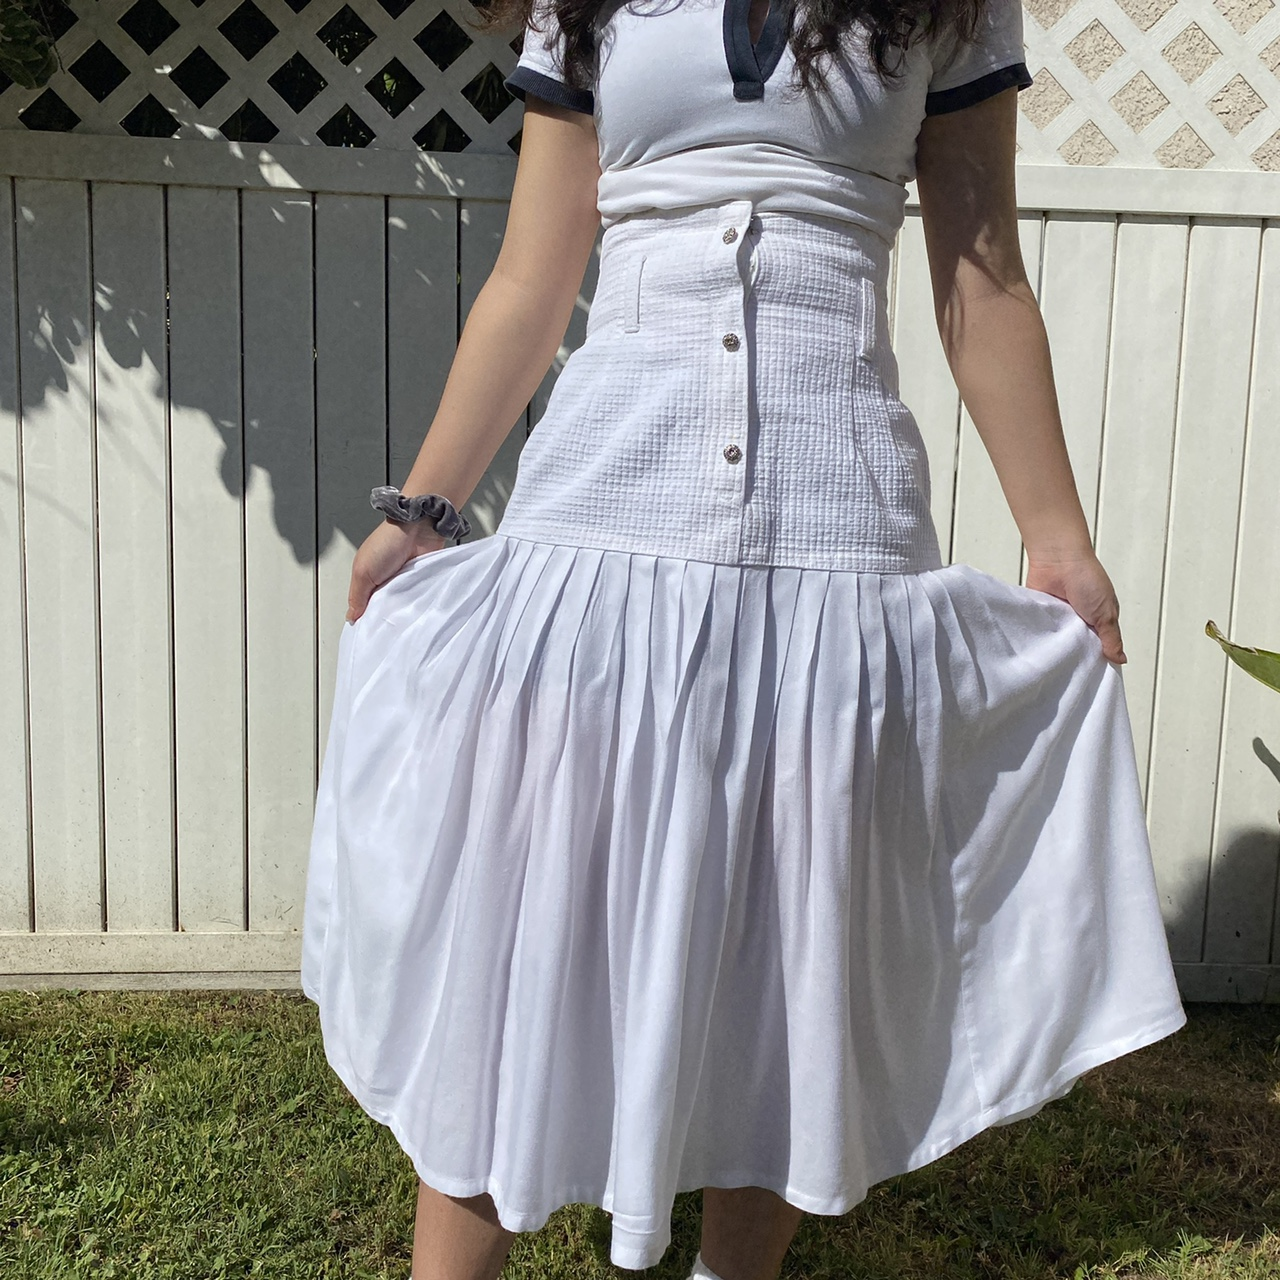 Product Image 1 - High waisted white skirt.